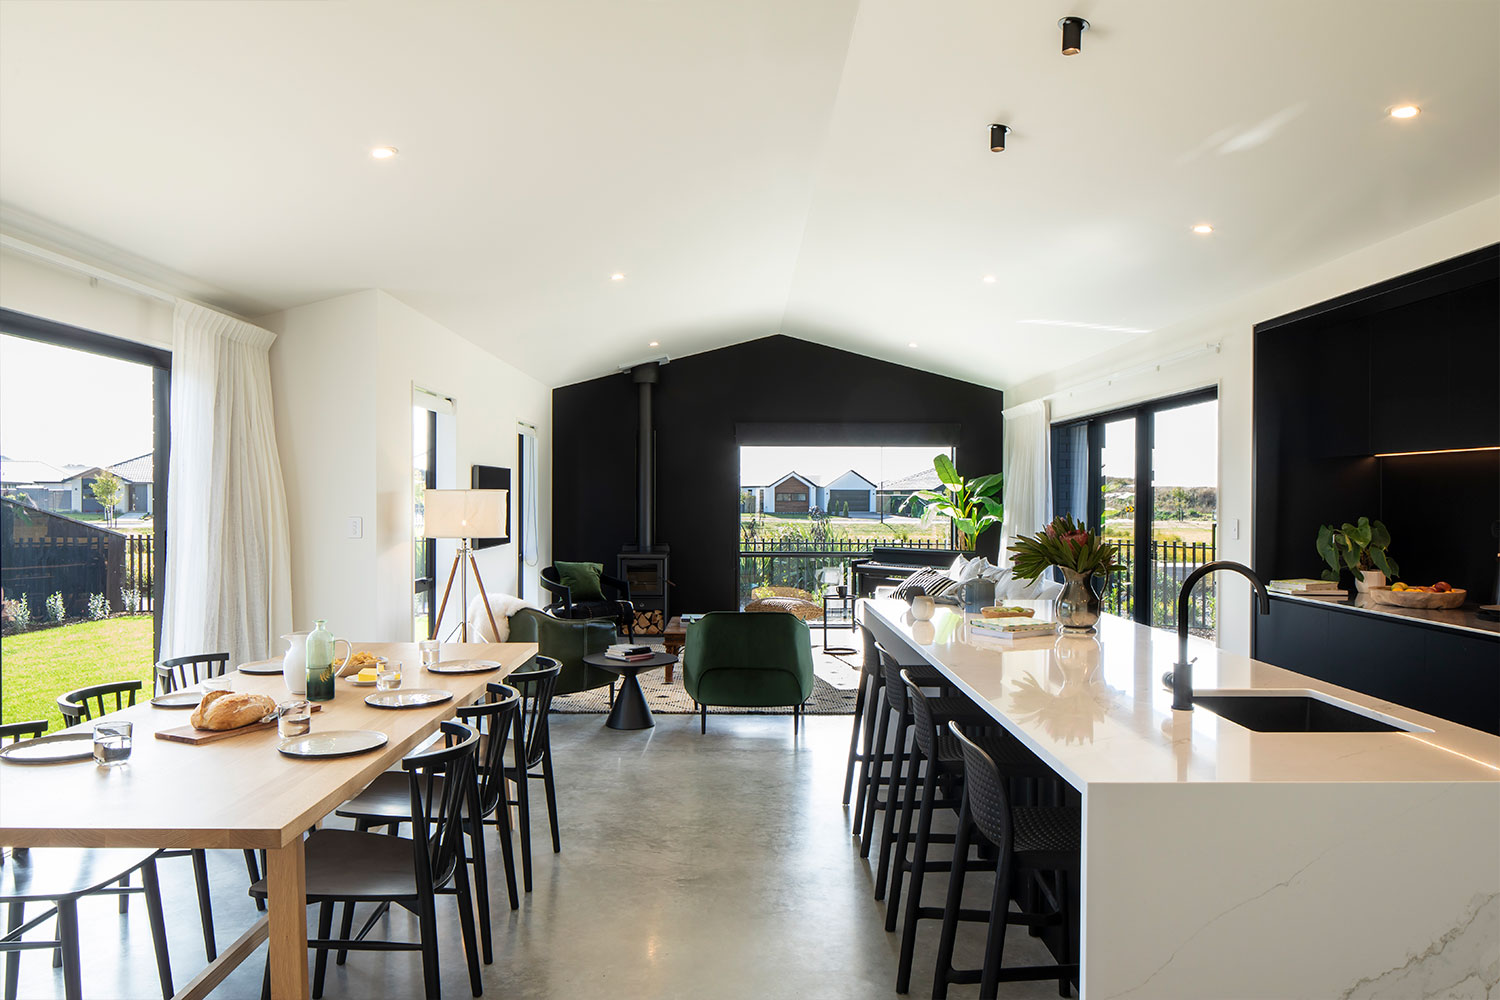 https://www.benchmarkhomes.co.nz/wp-content/uploads/2021/06/Projects-Evans-1-1500-x-1000-High-Res.jpg